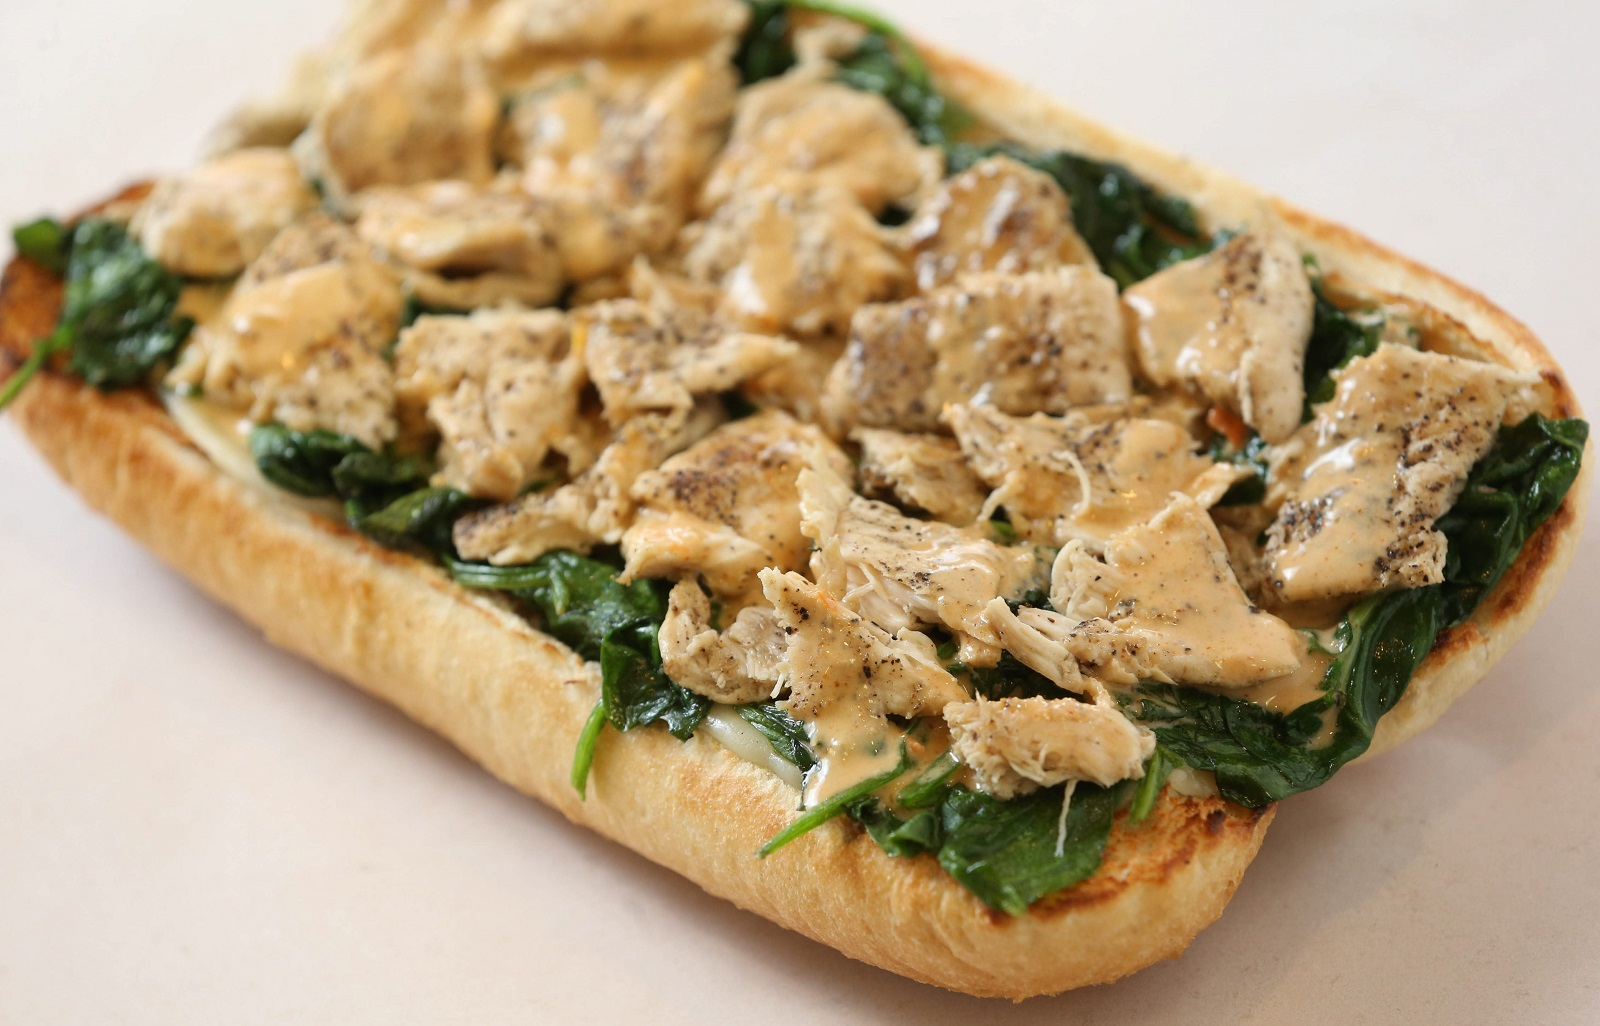 The chicken in the grass sub from Jim's Steakout. (Sharon Cantillon/Buffalo News)